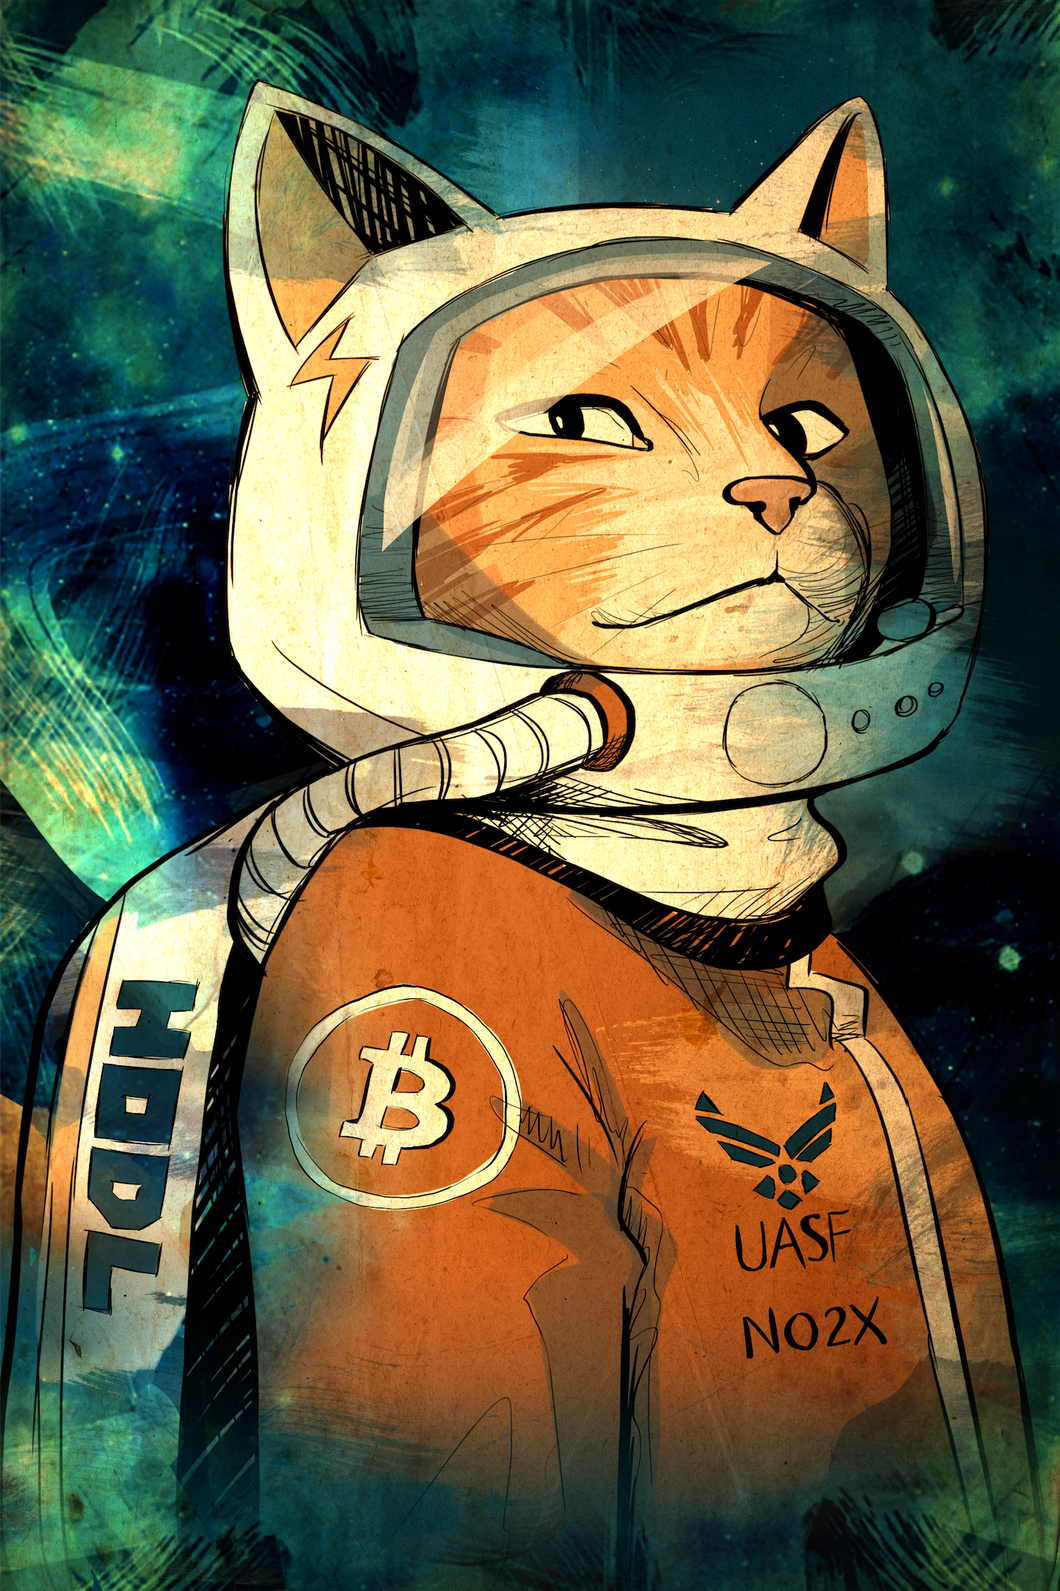 Hodlonaut Artwork, 100% Proceeds Donated, Limited to 21